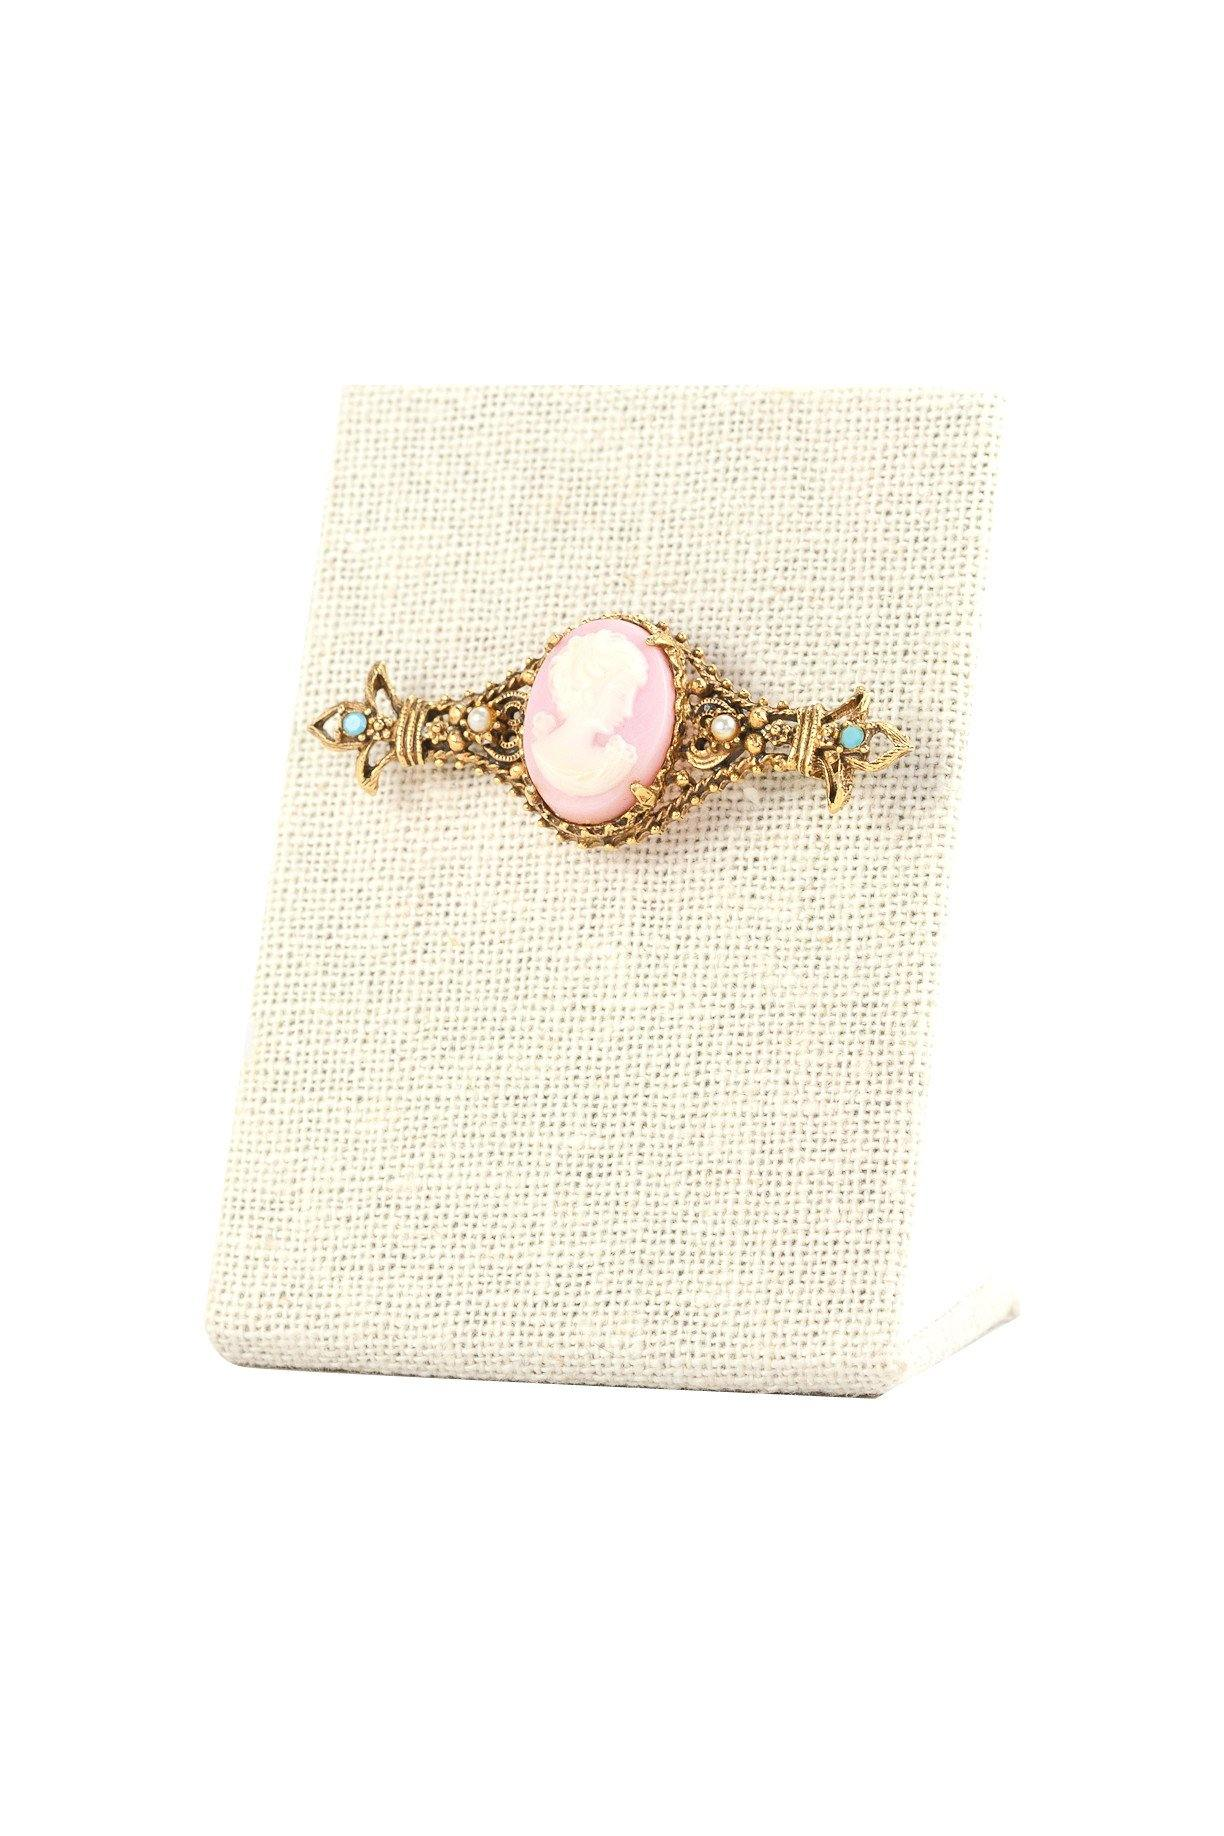 60's__Florenza__Cameo Statement Brooch